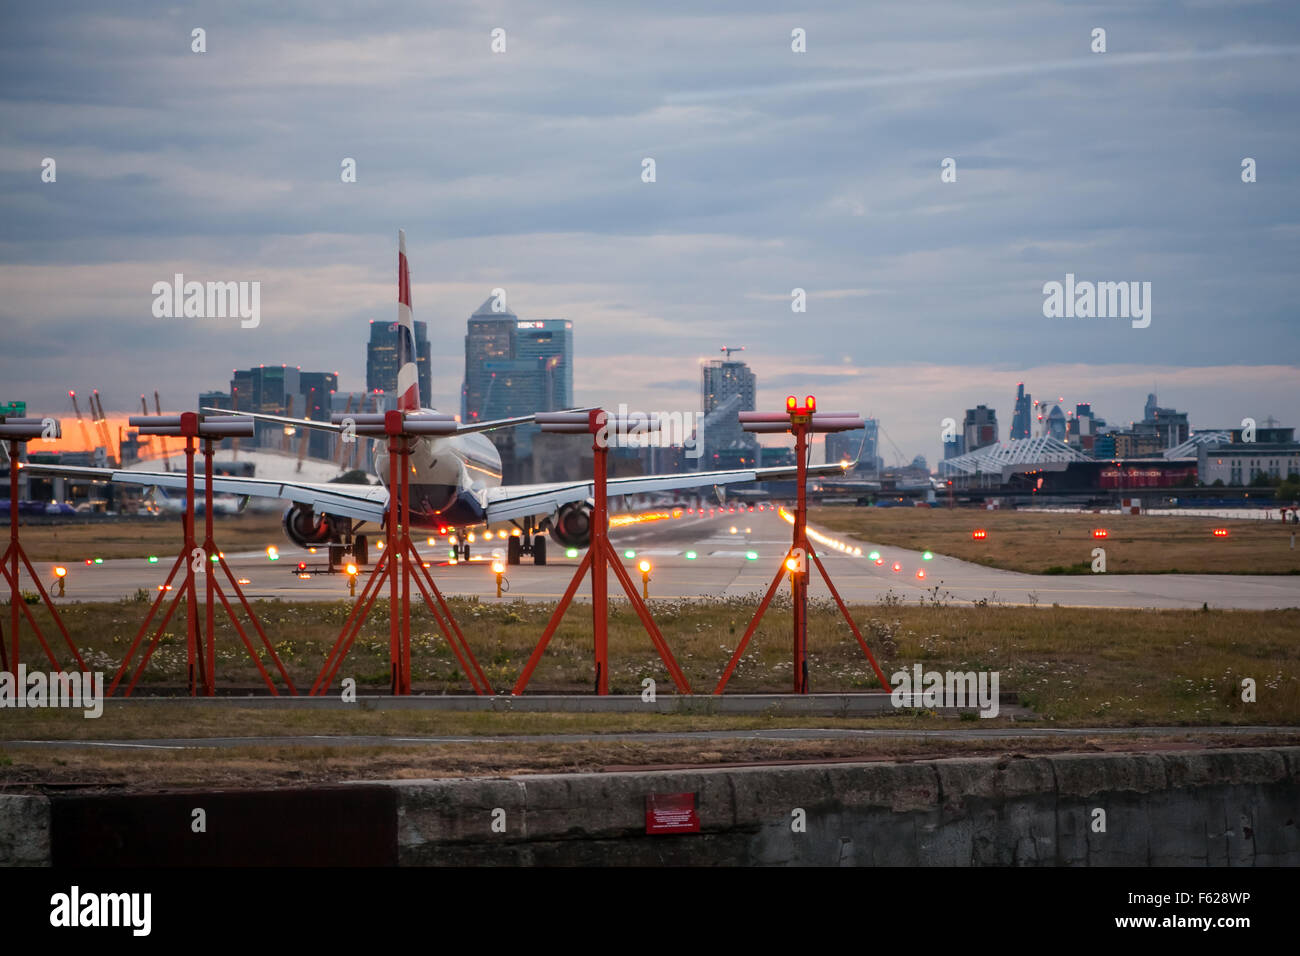 A passenger jet plane waiting to depart on the runway at London City Airport - Stock Image